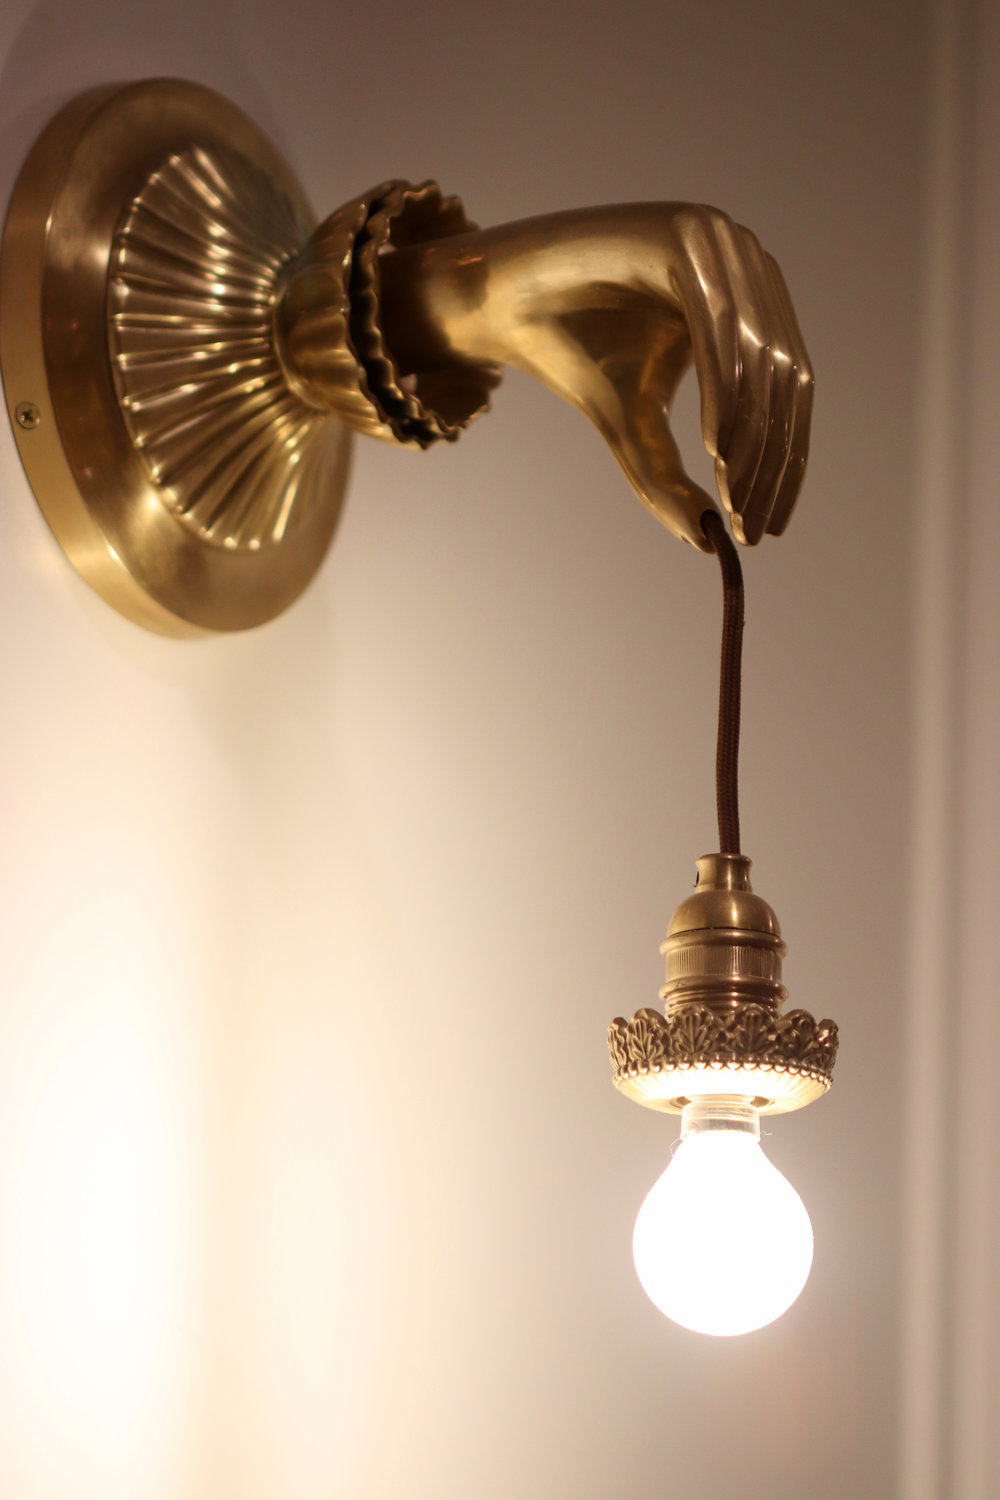 The coolest light fixture EVER hangs in the dinning room. I must find this and have one immediately!